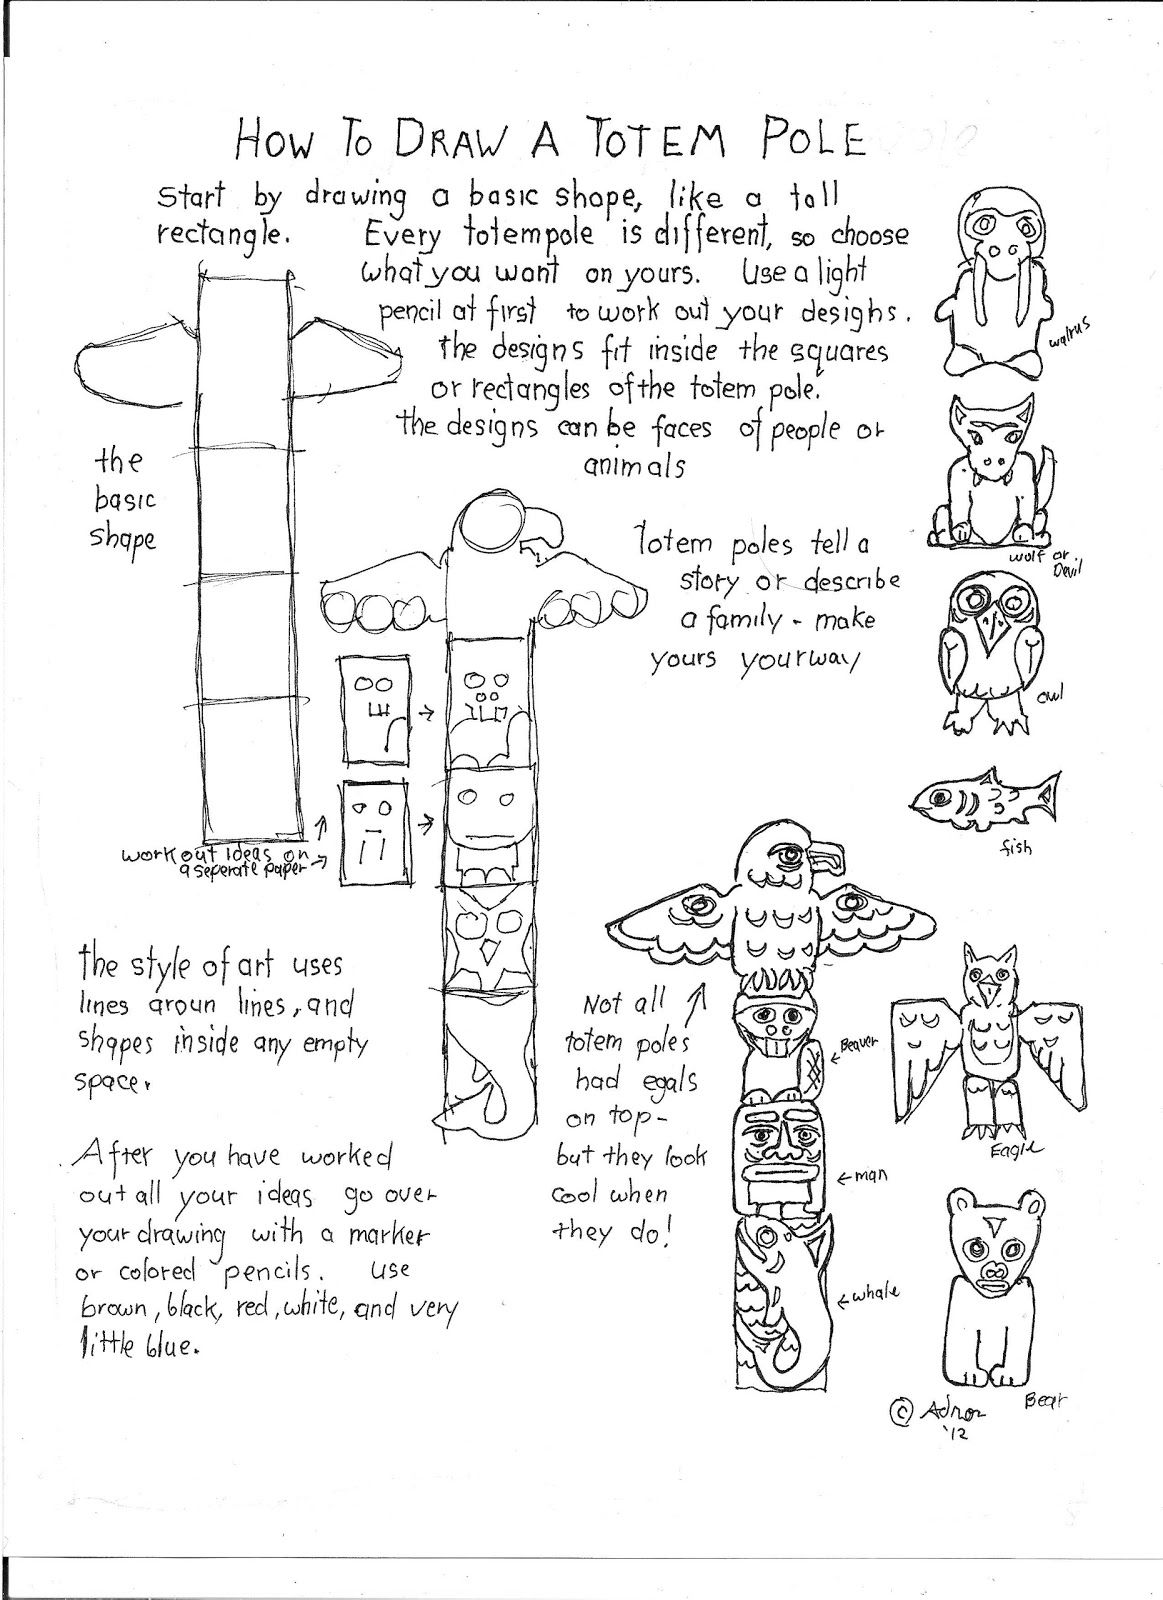 How to draw a totem pole printable worksheet   Native ...